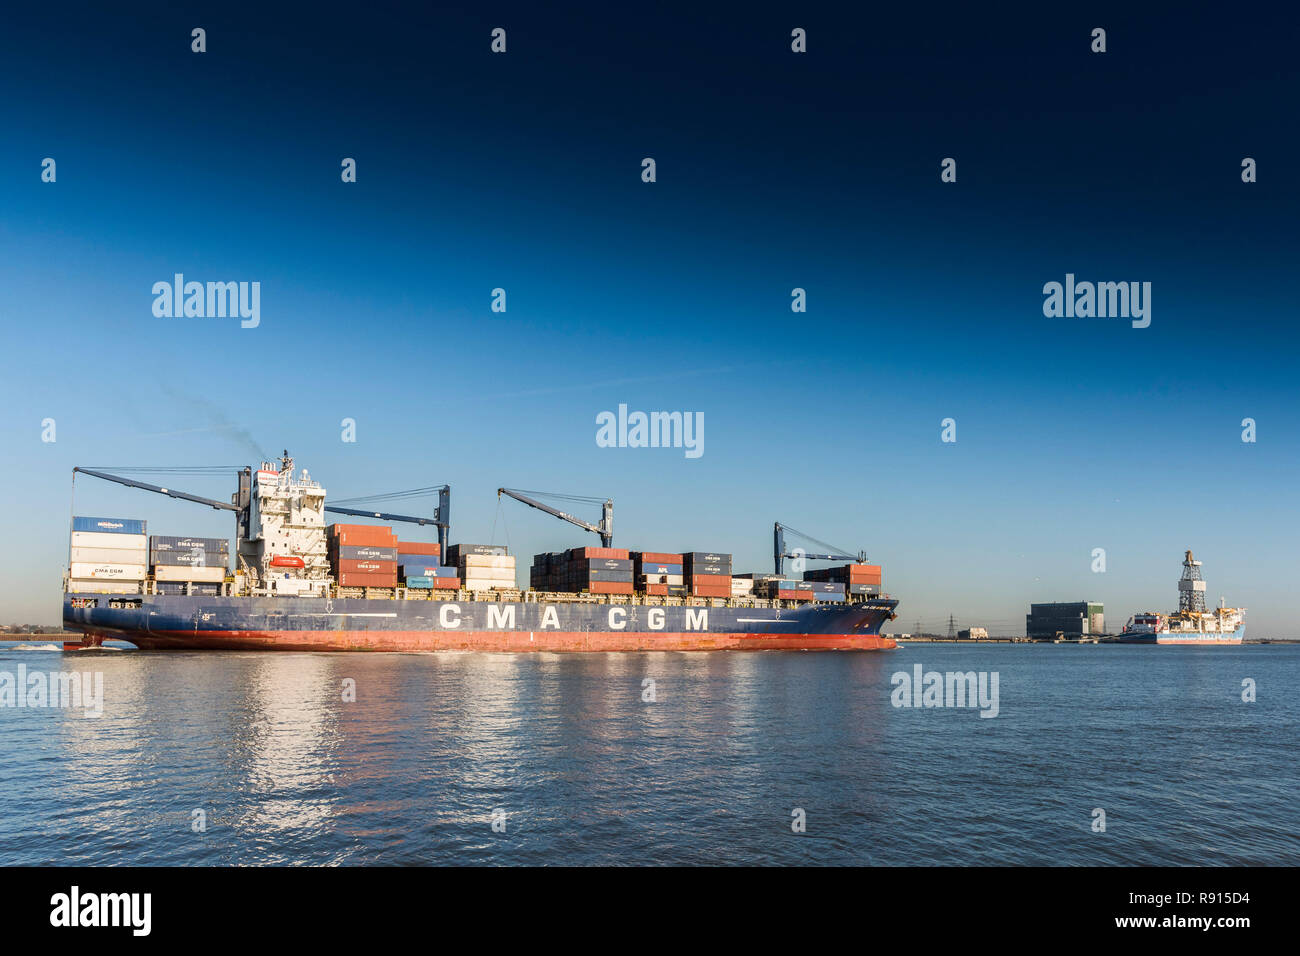 Shipping on the Thames.  The CMA CGM Africa One container ship lteaming downriver on the River Thames. - Stock Image